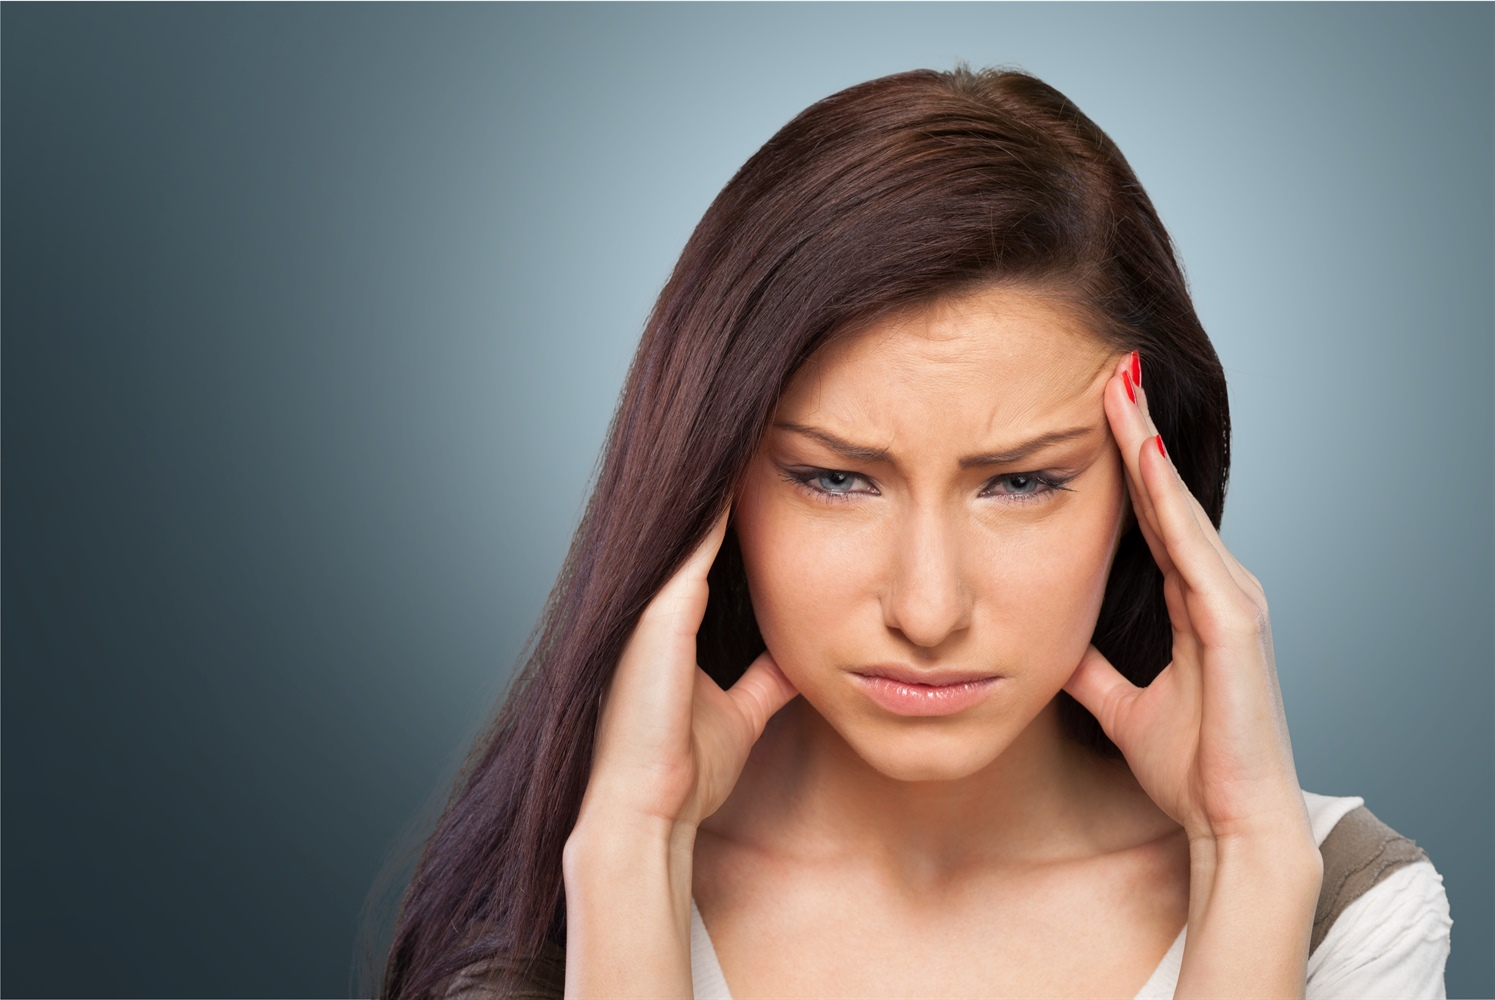 CBD is Beneficial for Social Anxiety Disorder